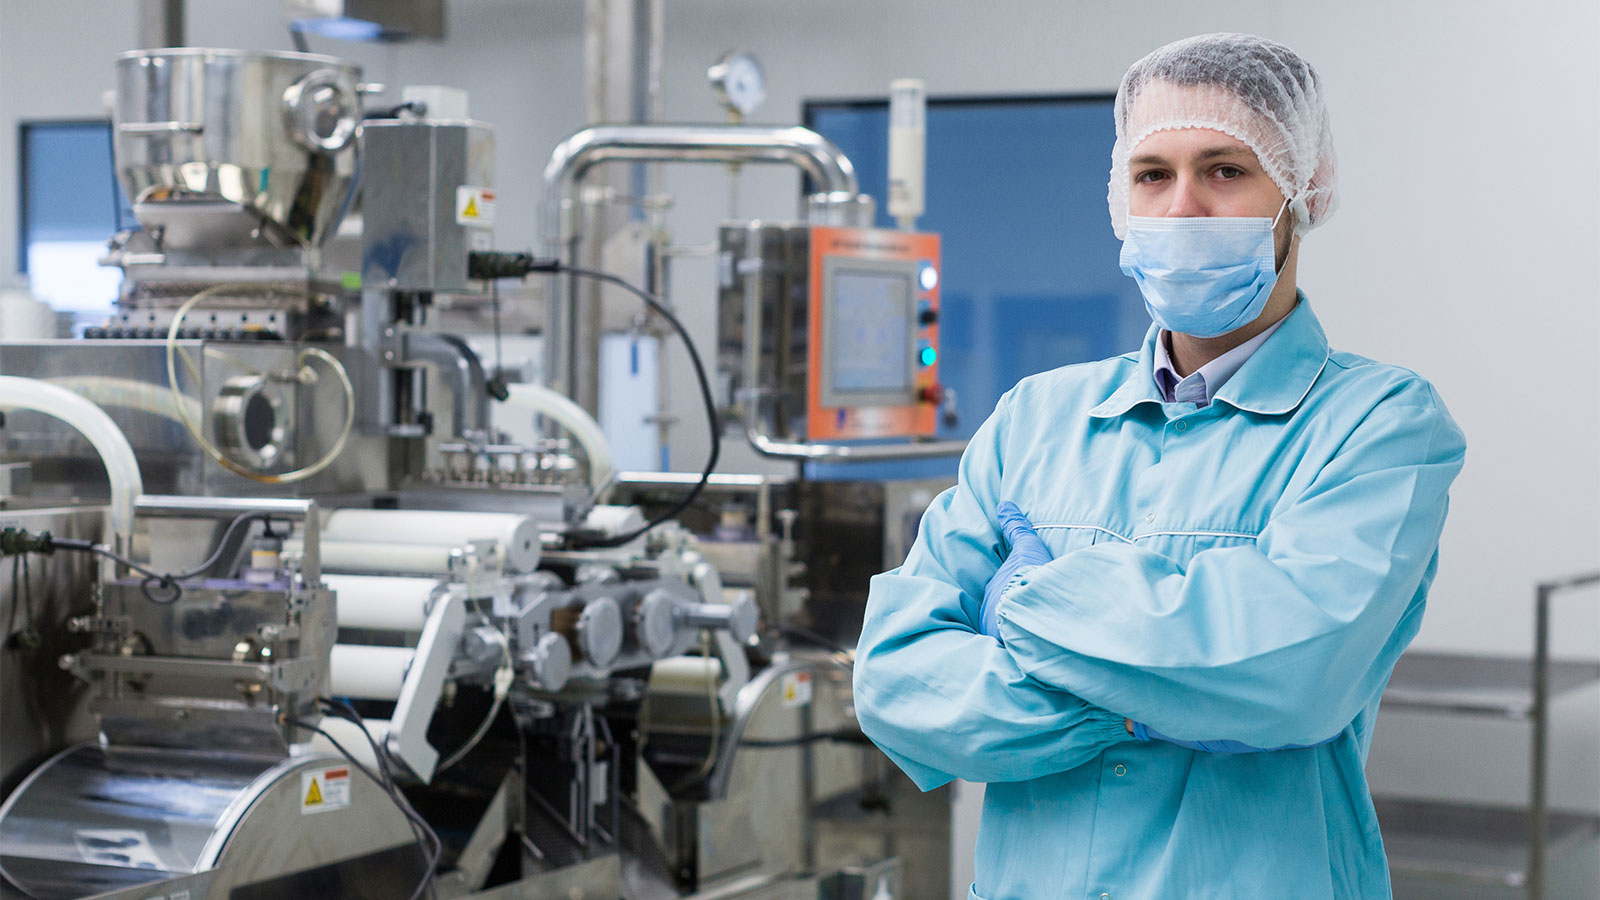 Factory worker in blue lab uniform and facemask